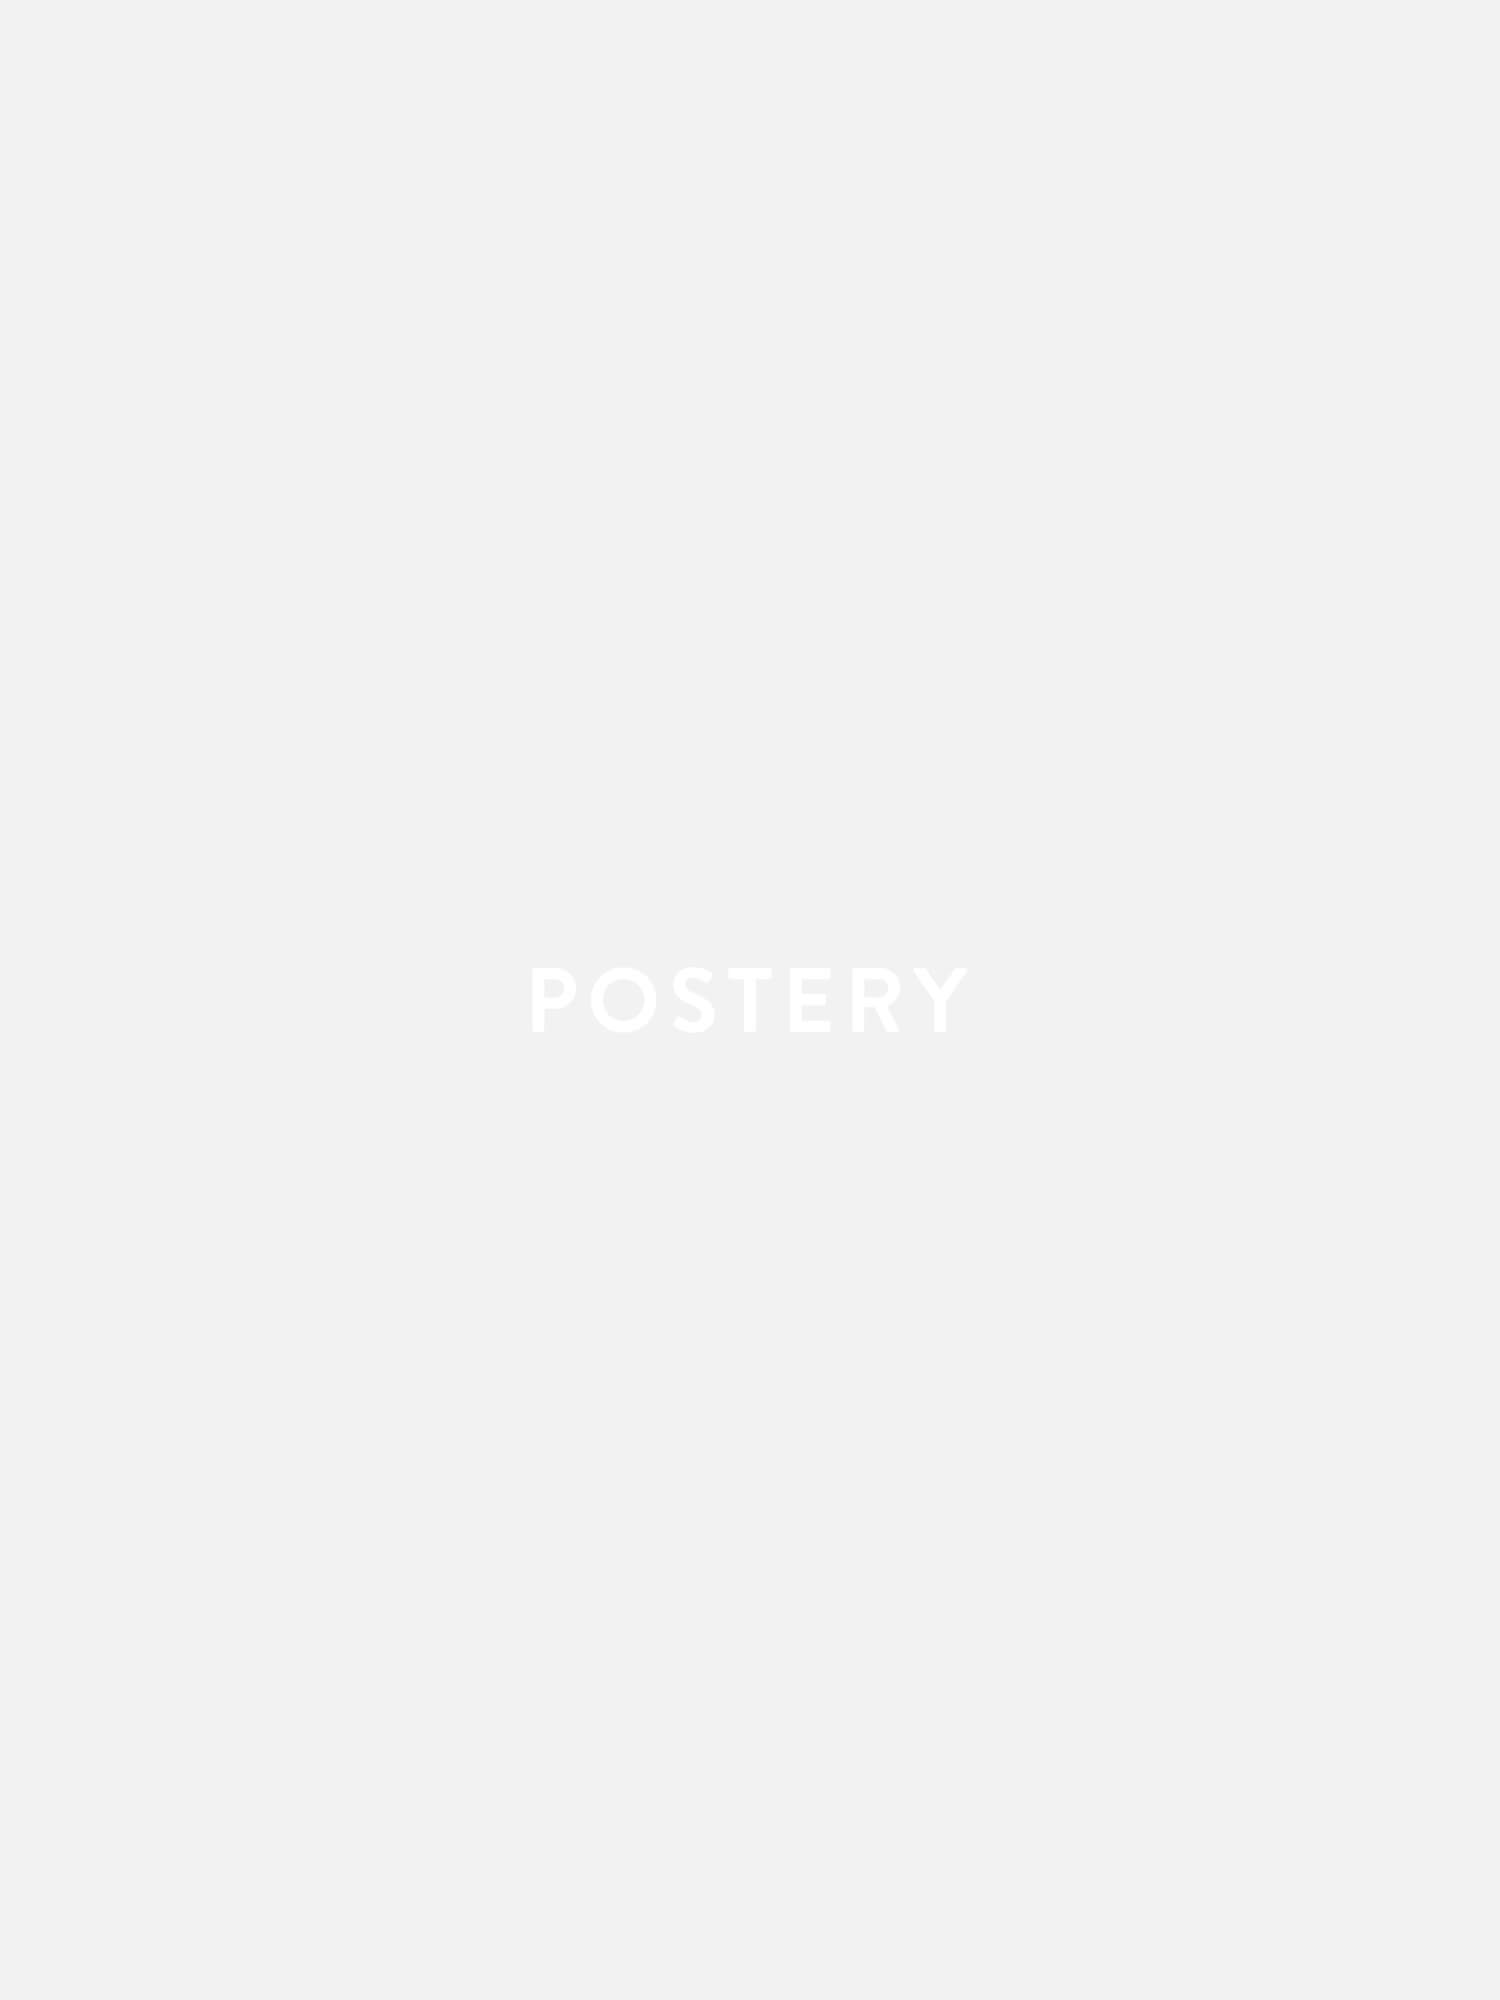 Monstera no.2 Poster